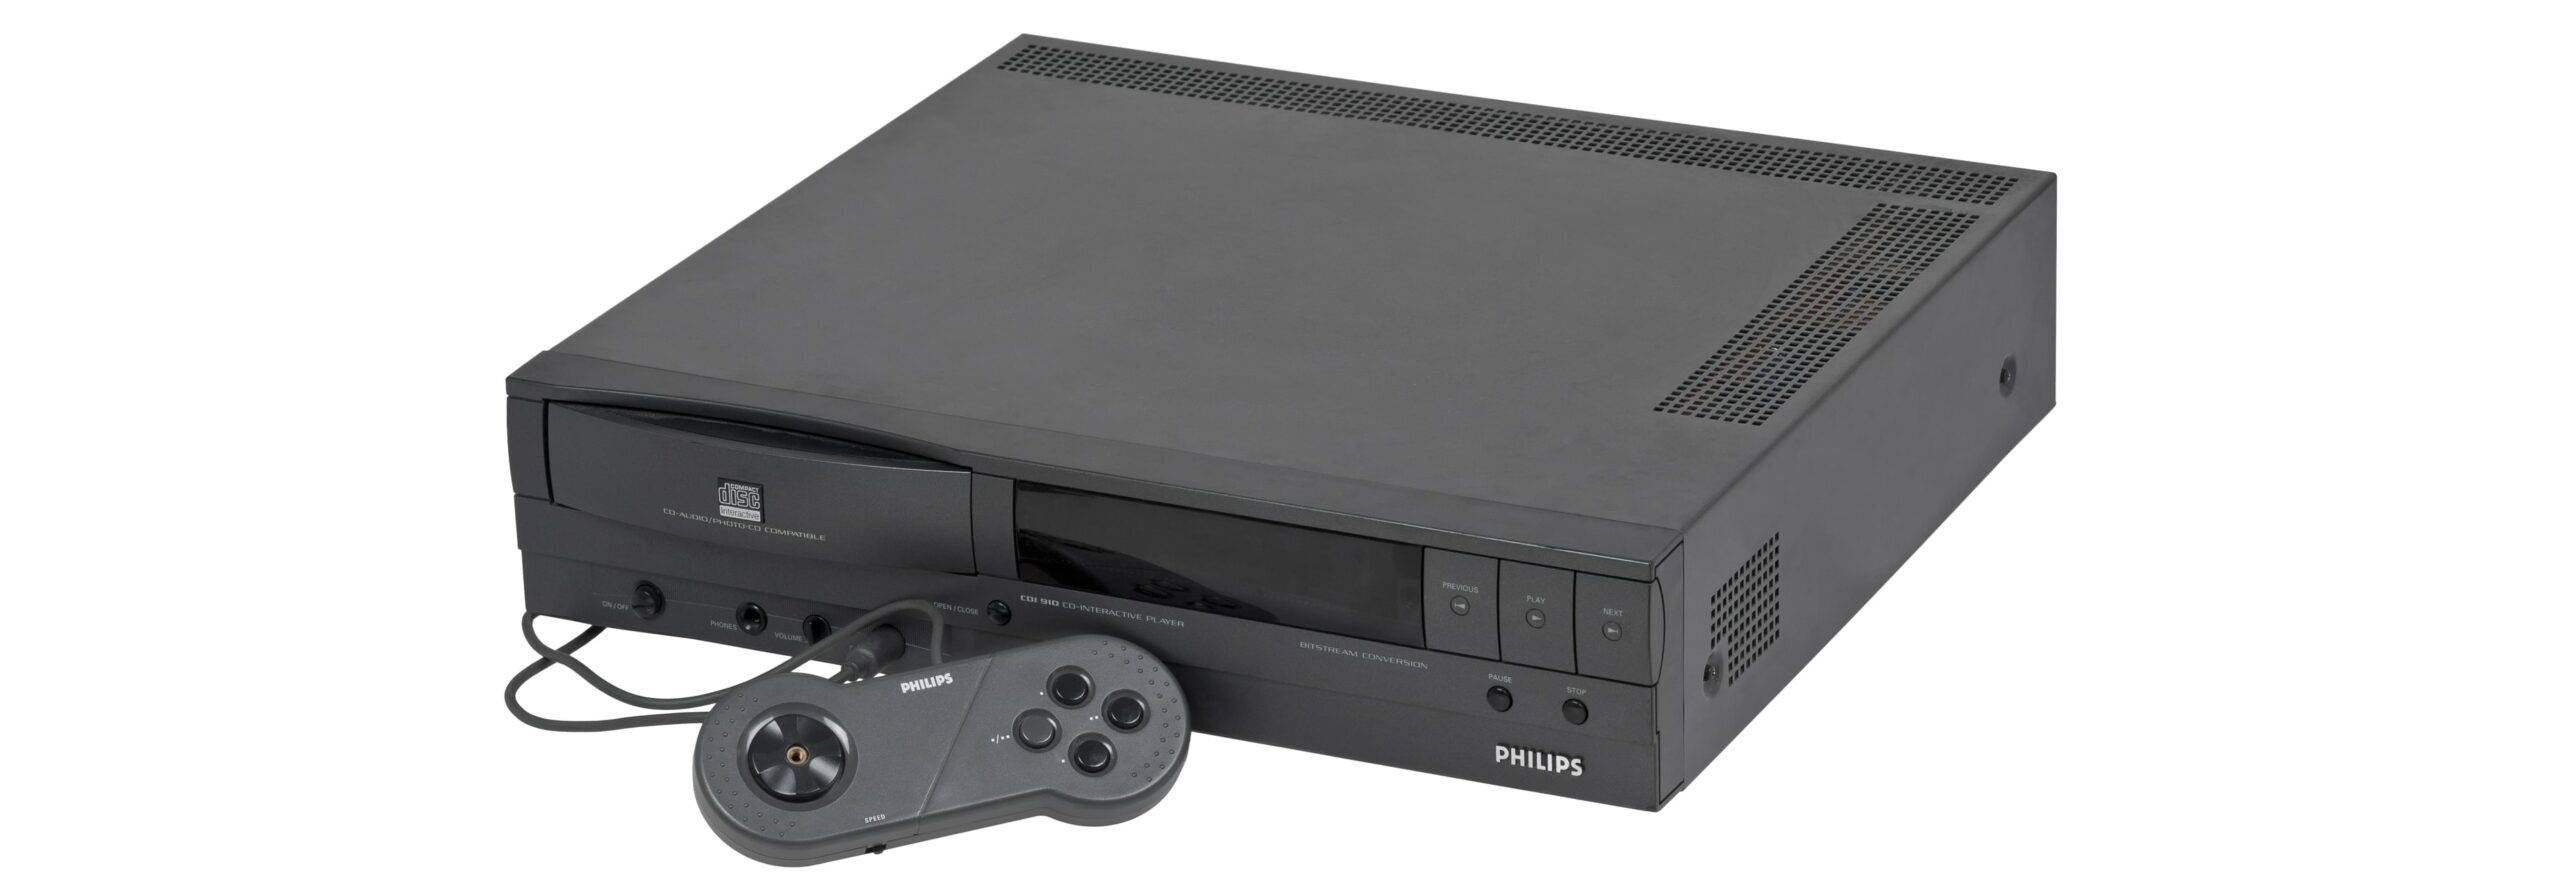 Philips CD-i gaming console